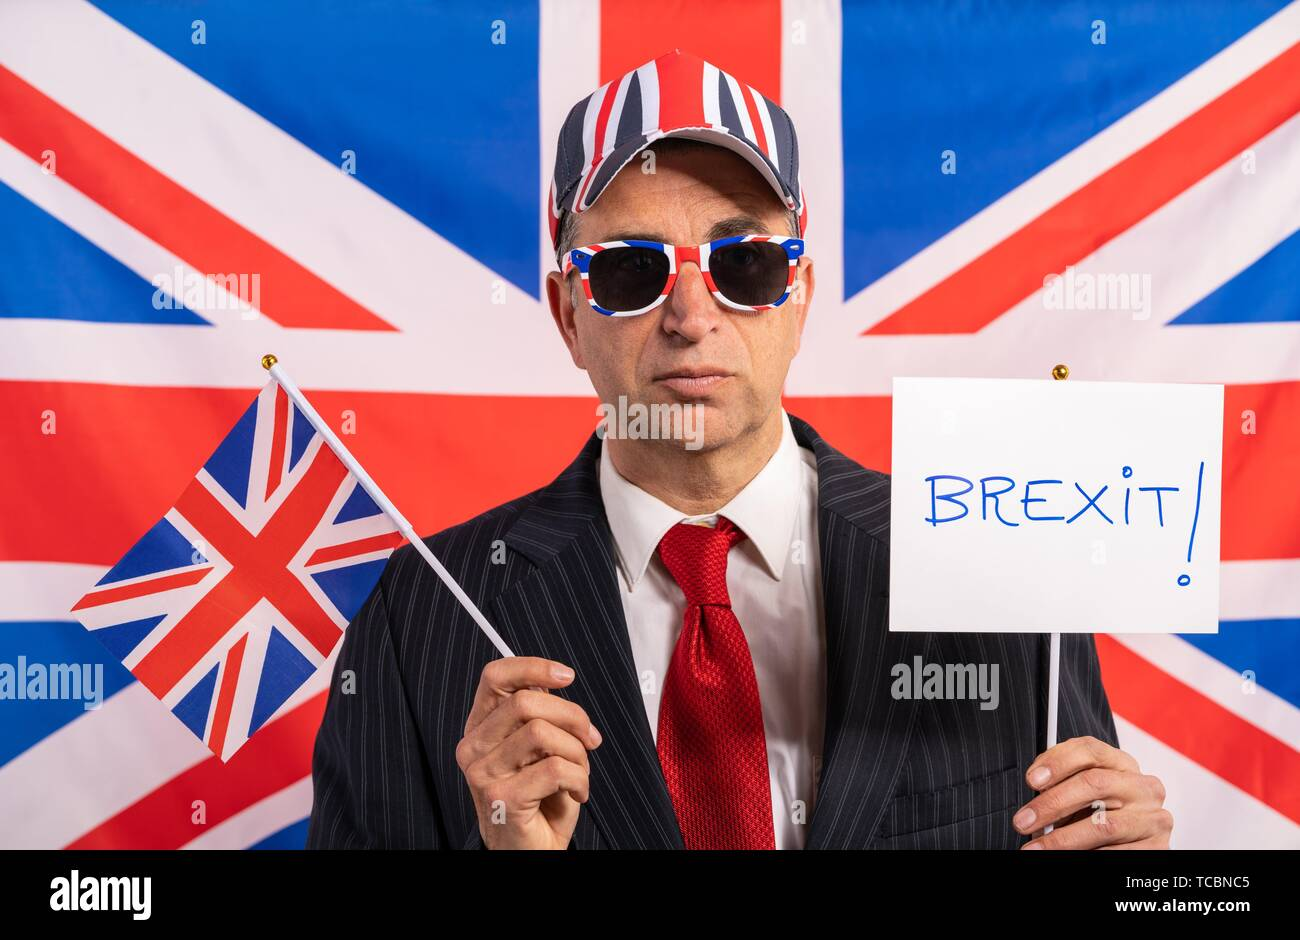 British male businessman with Brexit banner and UK flag. - Stock Image